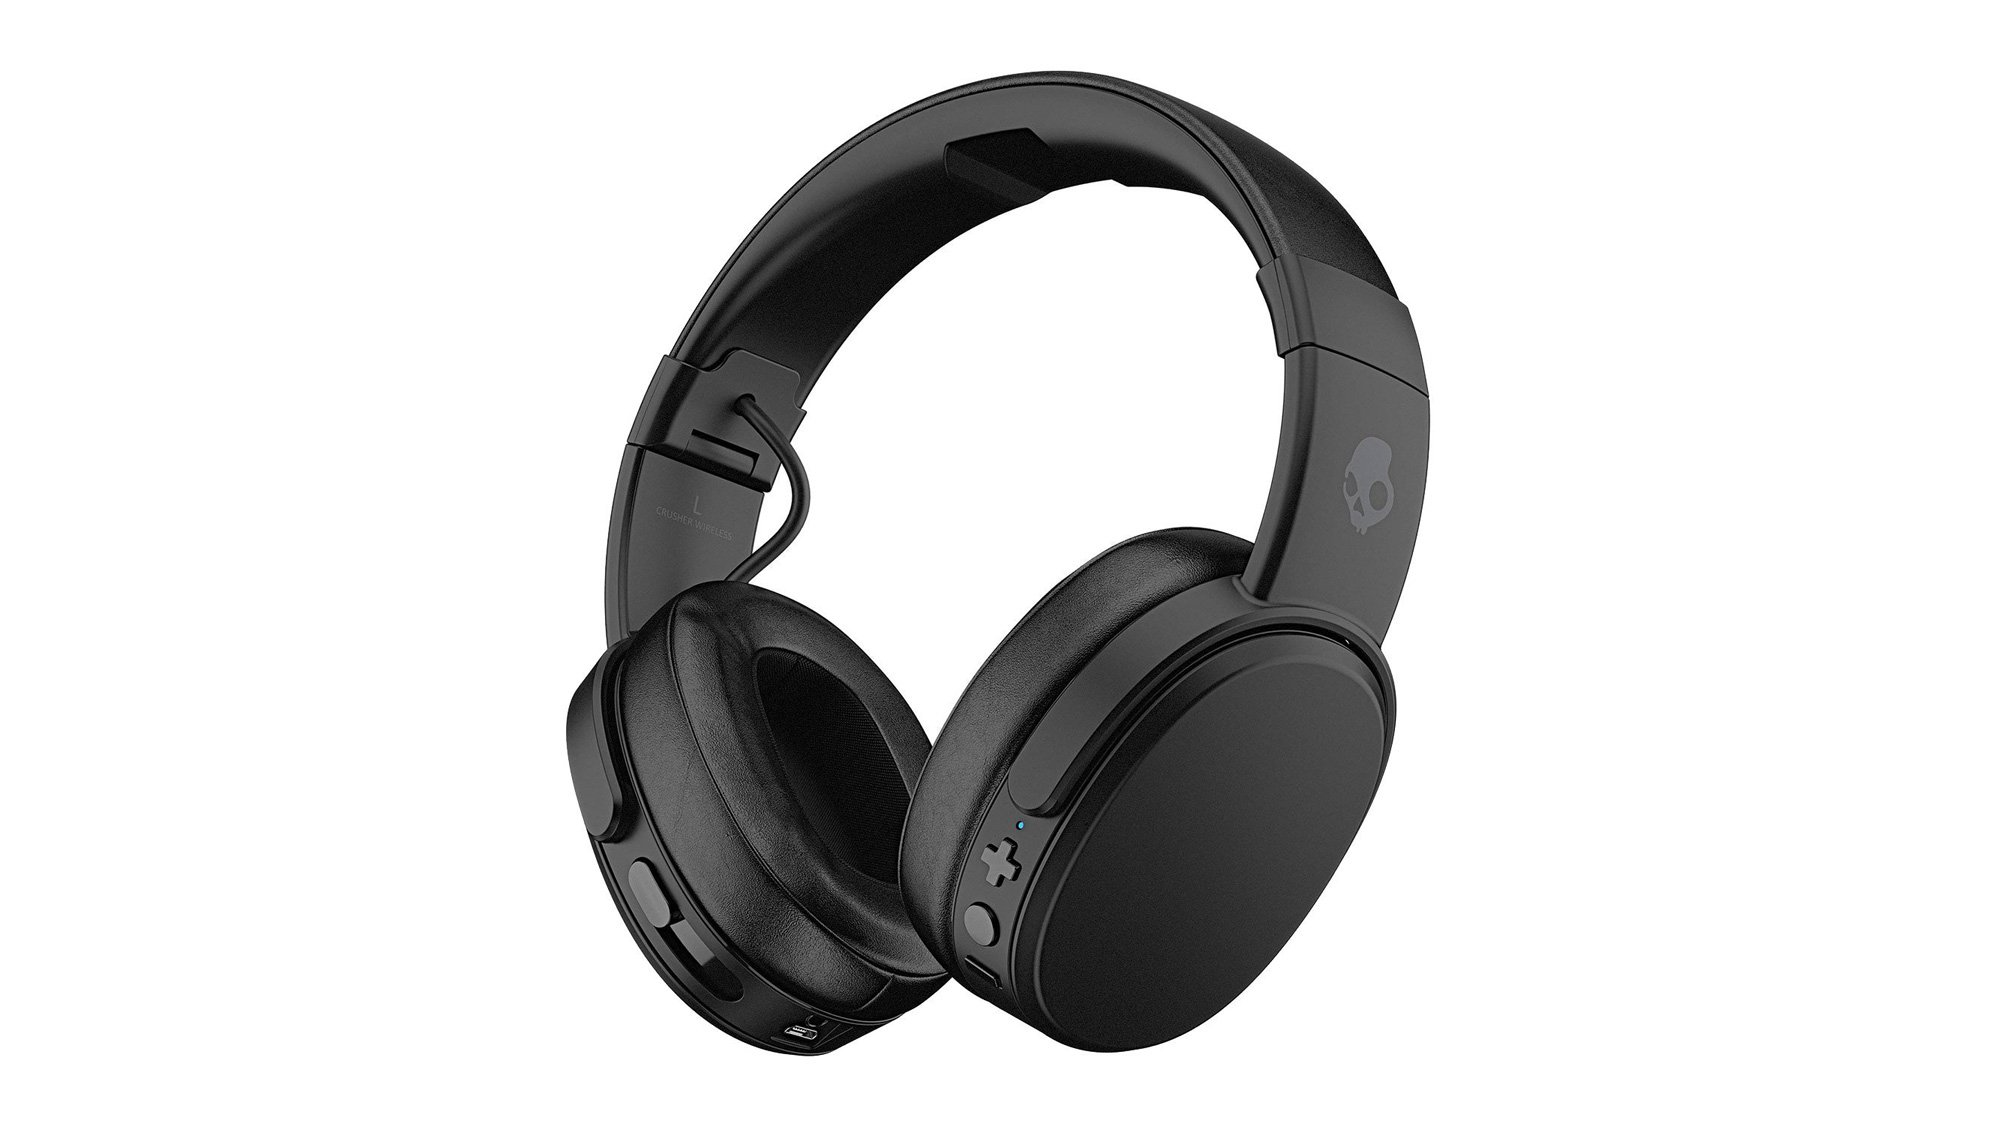 a3be9795646 If you're looking for over-the-ear Bluetooth headphones with a lot of bass,  nothing comes close to the Skullcandy Crusher Wireless.